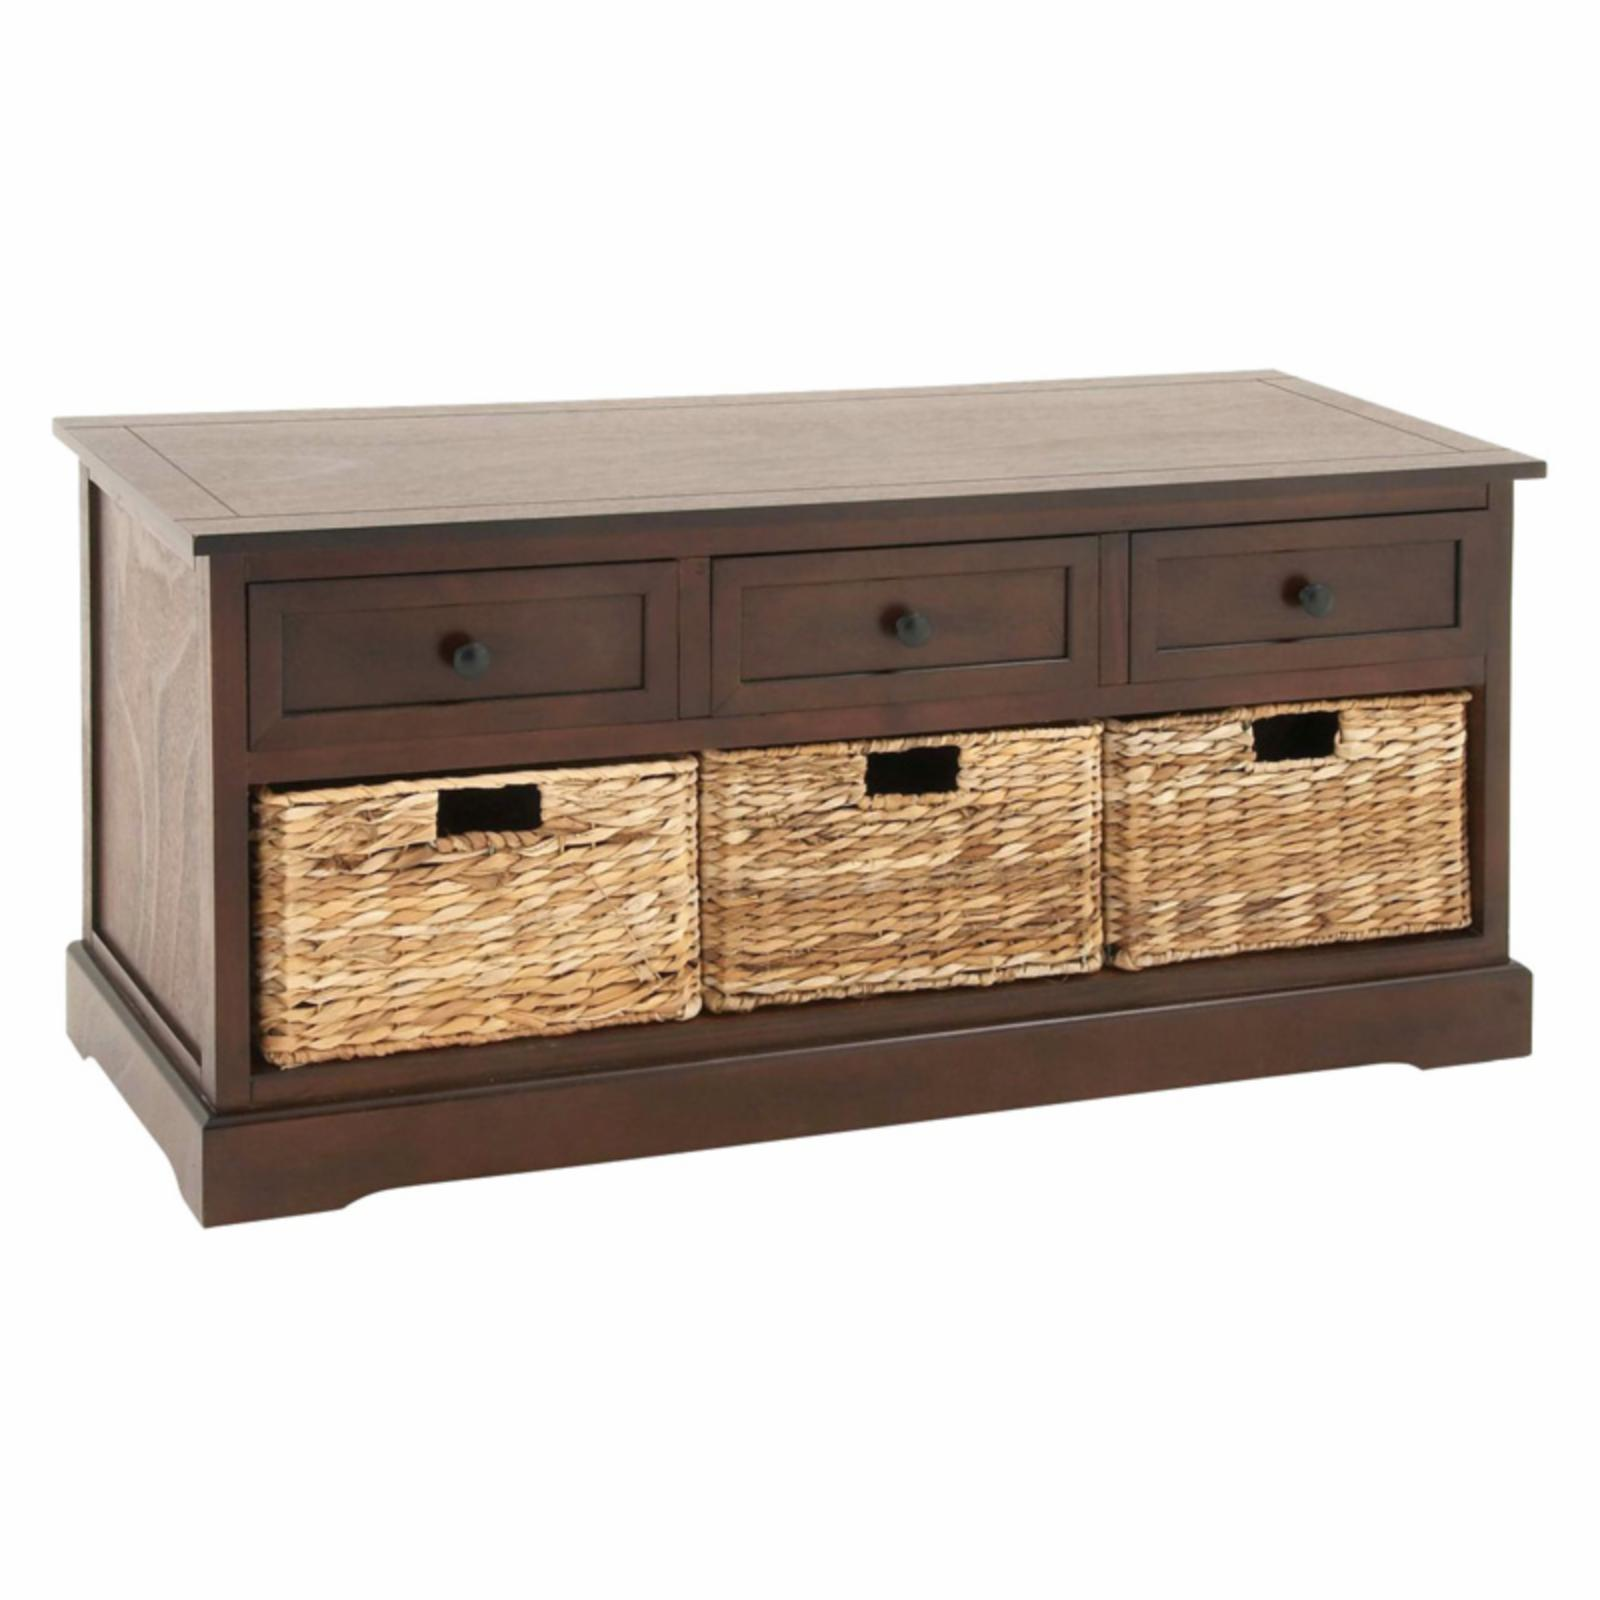 3-Drawer Wood and Wicker Basket Cabinet - 45W x 20H in. - Brown - 96178